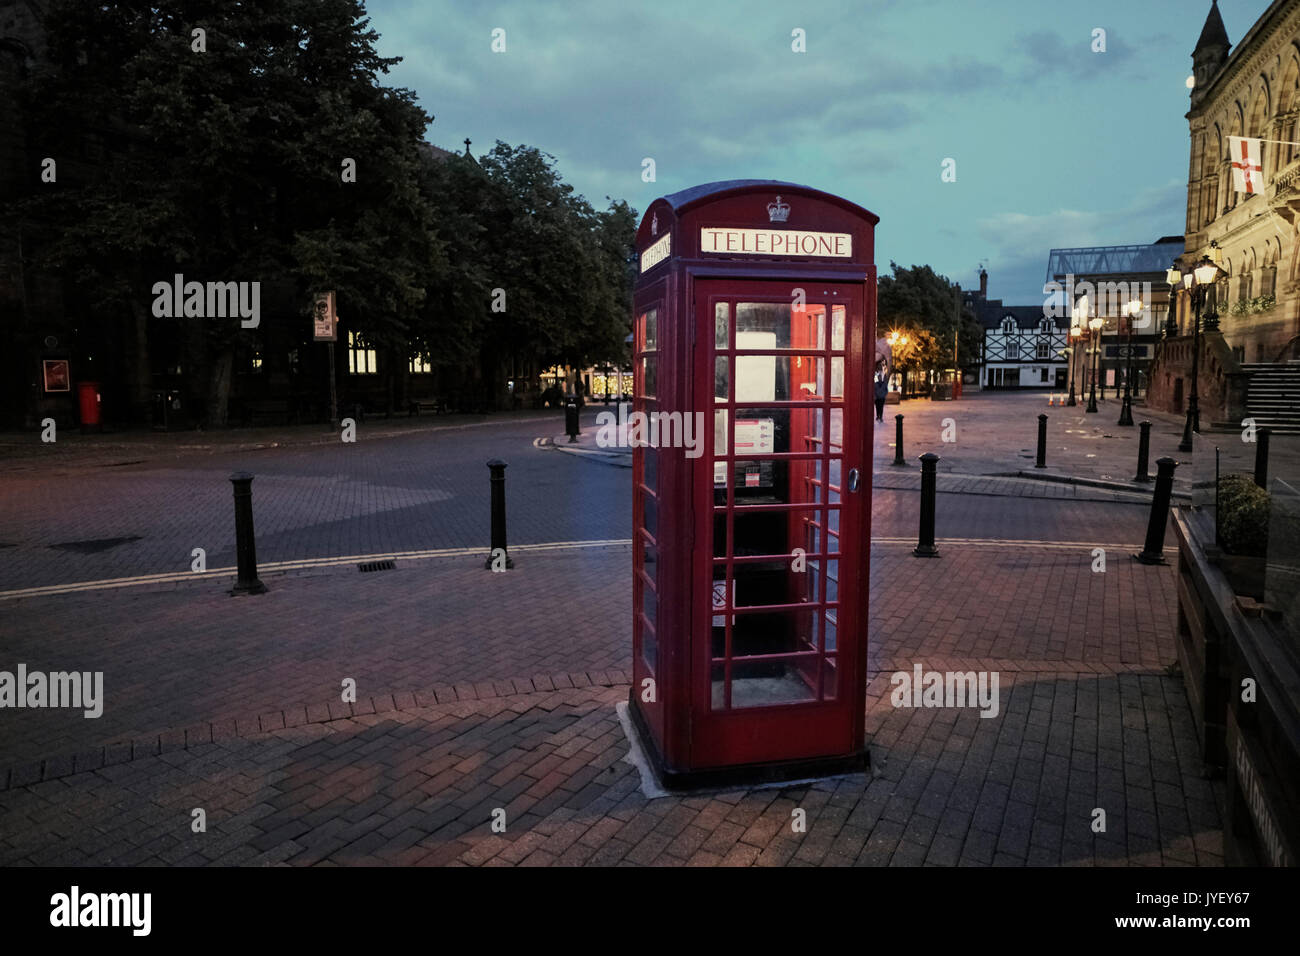 Telephone box in early evening at Chester - Stock Image